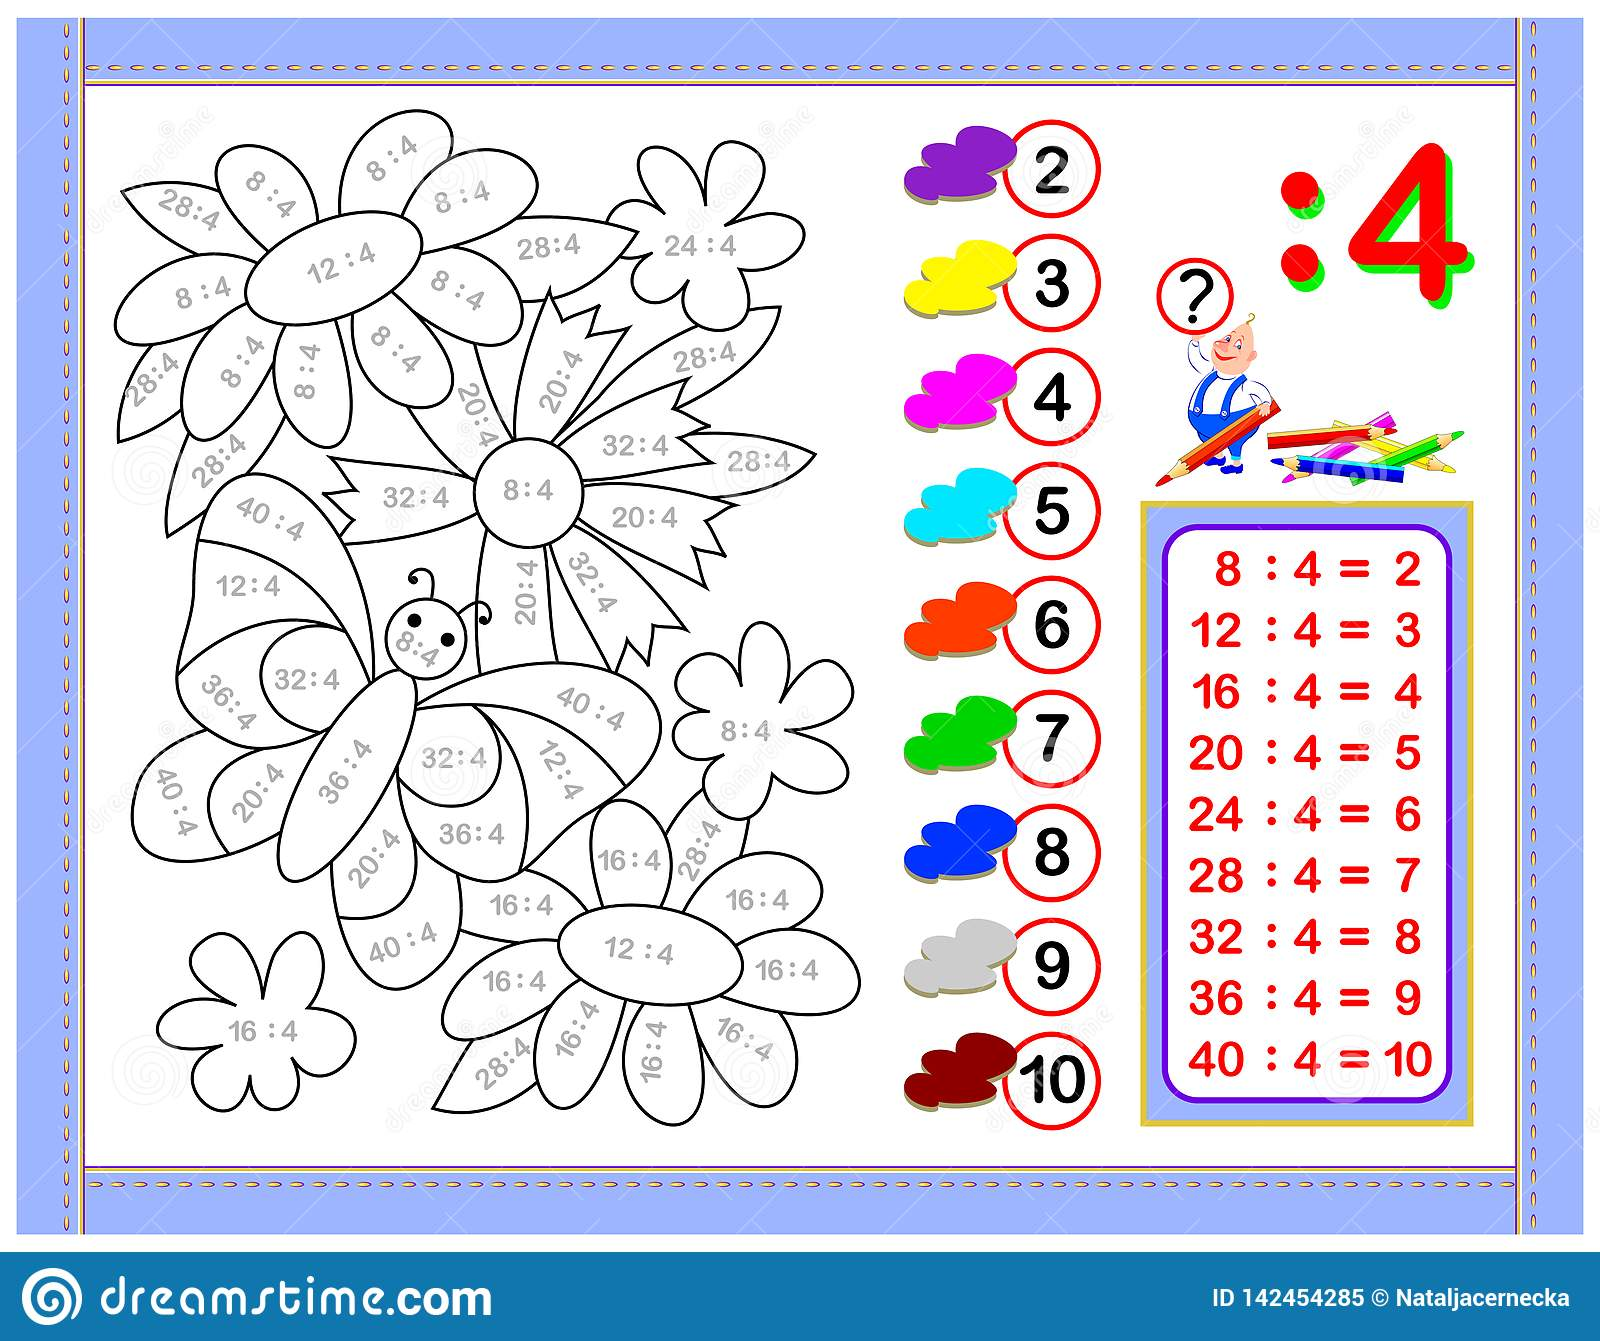 Exercises For Kids With Division By Number 4 Paint The Picture